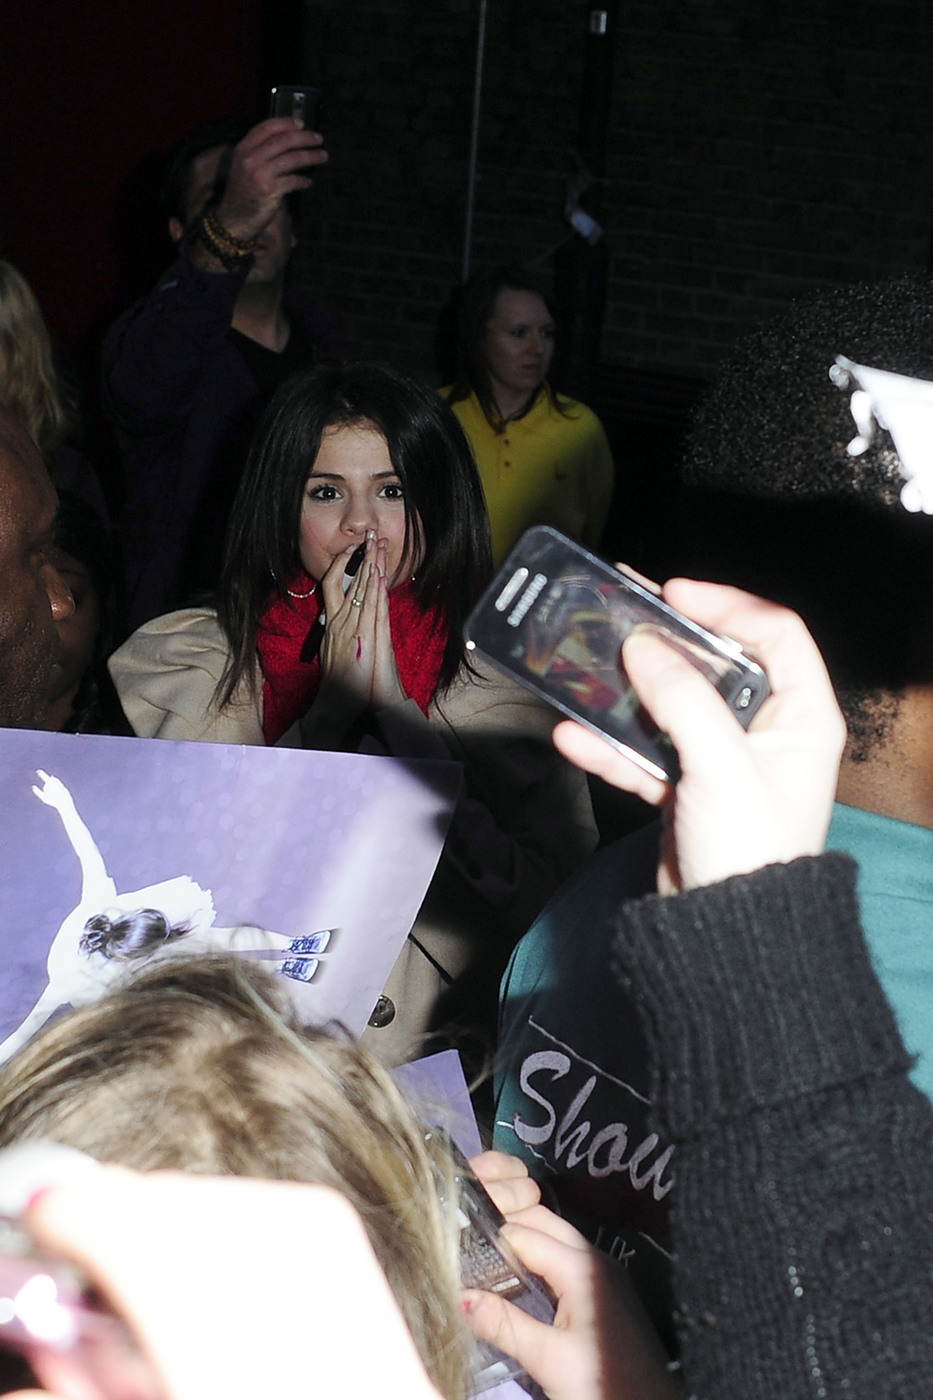 Selena Gomez had her first-ever concert in London (PHOTOS)